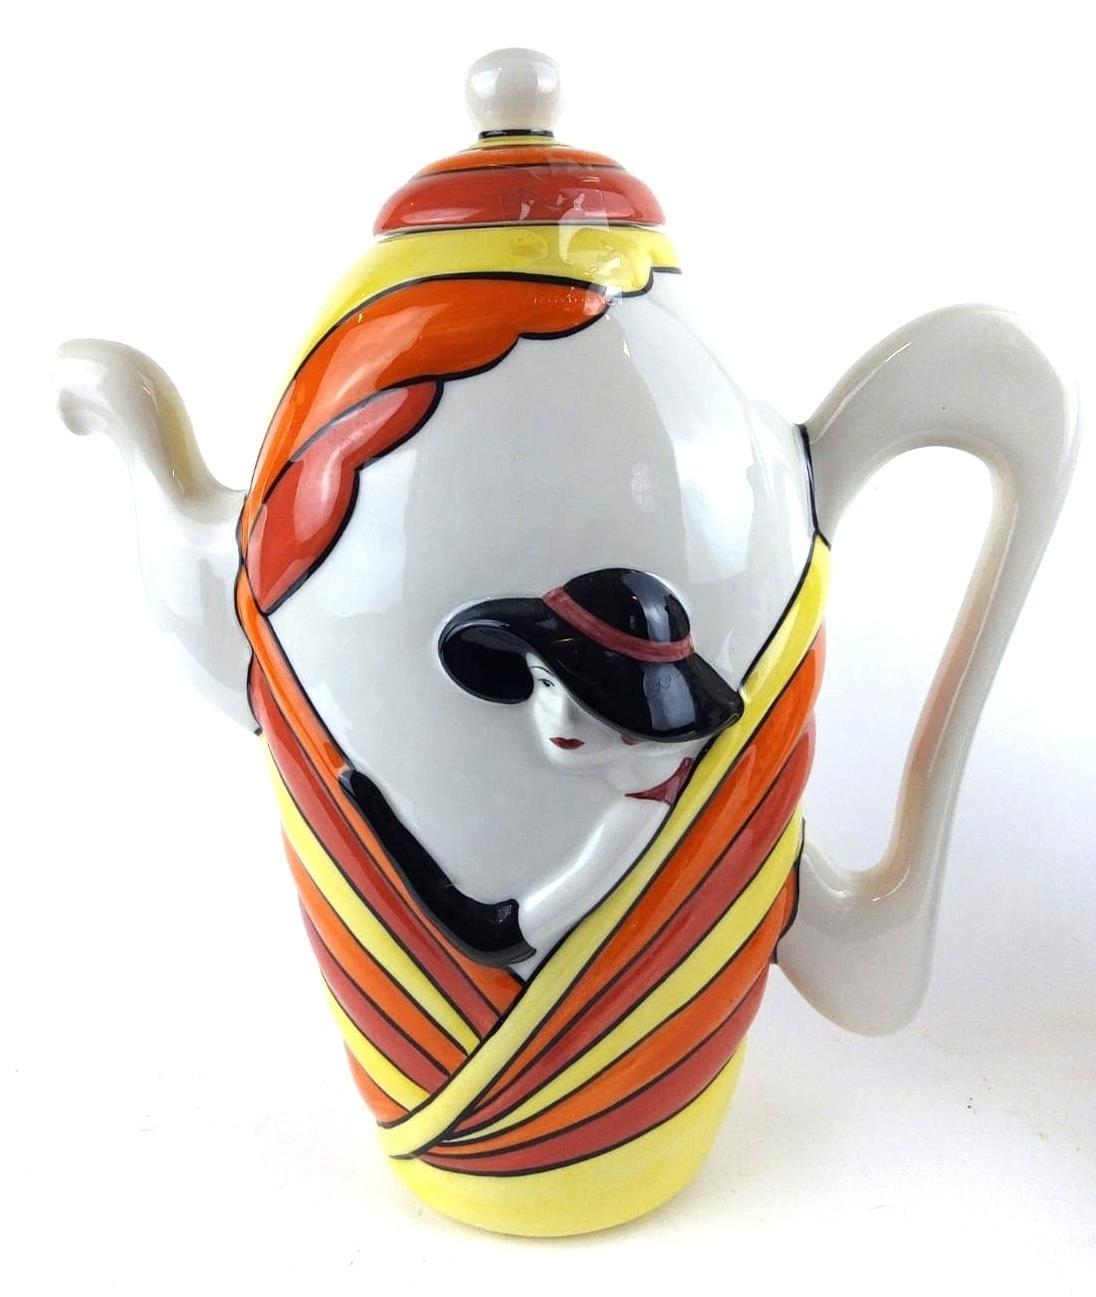 LORNA BAILEY OF STOKE-ON-TRENT, A LARGE LIMITED EDITION (41/75) ART DECO STYLE PORCELAIN LADIES'